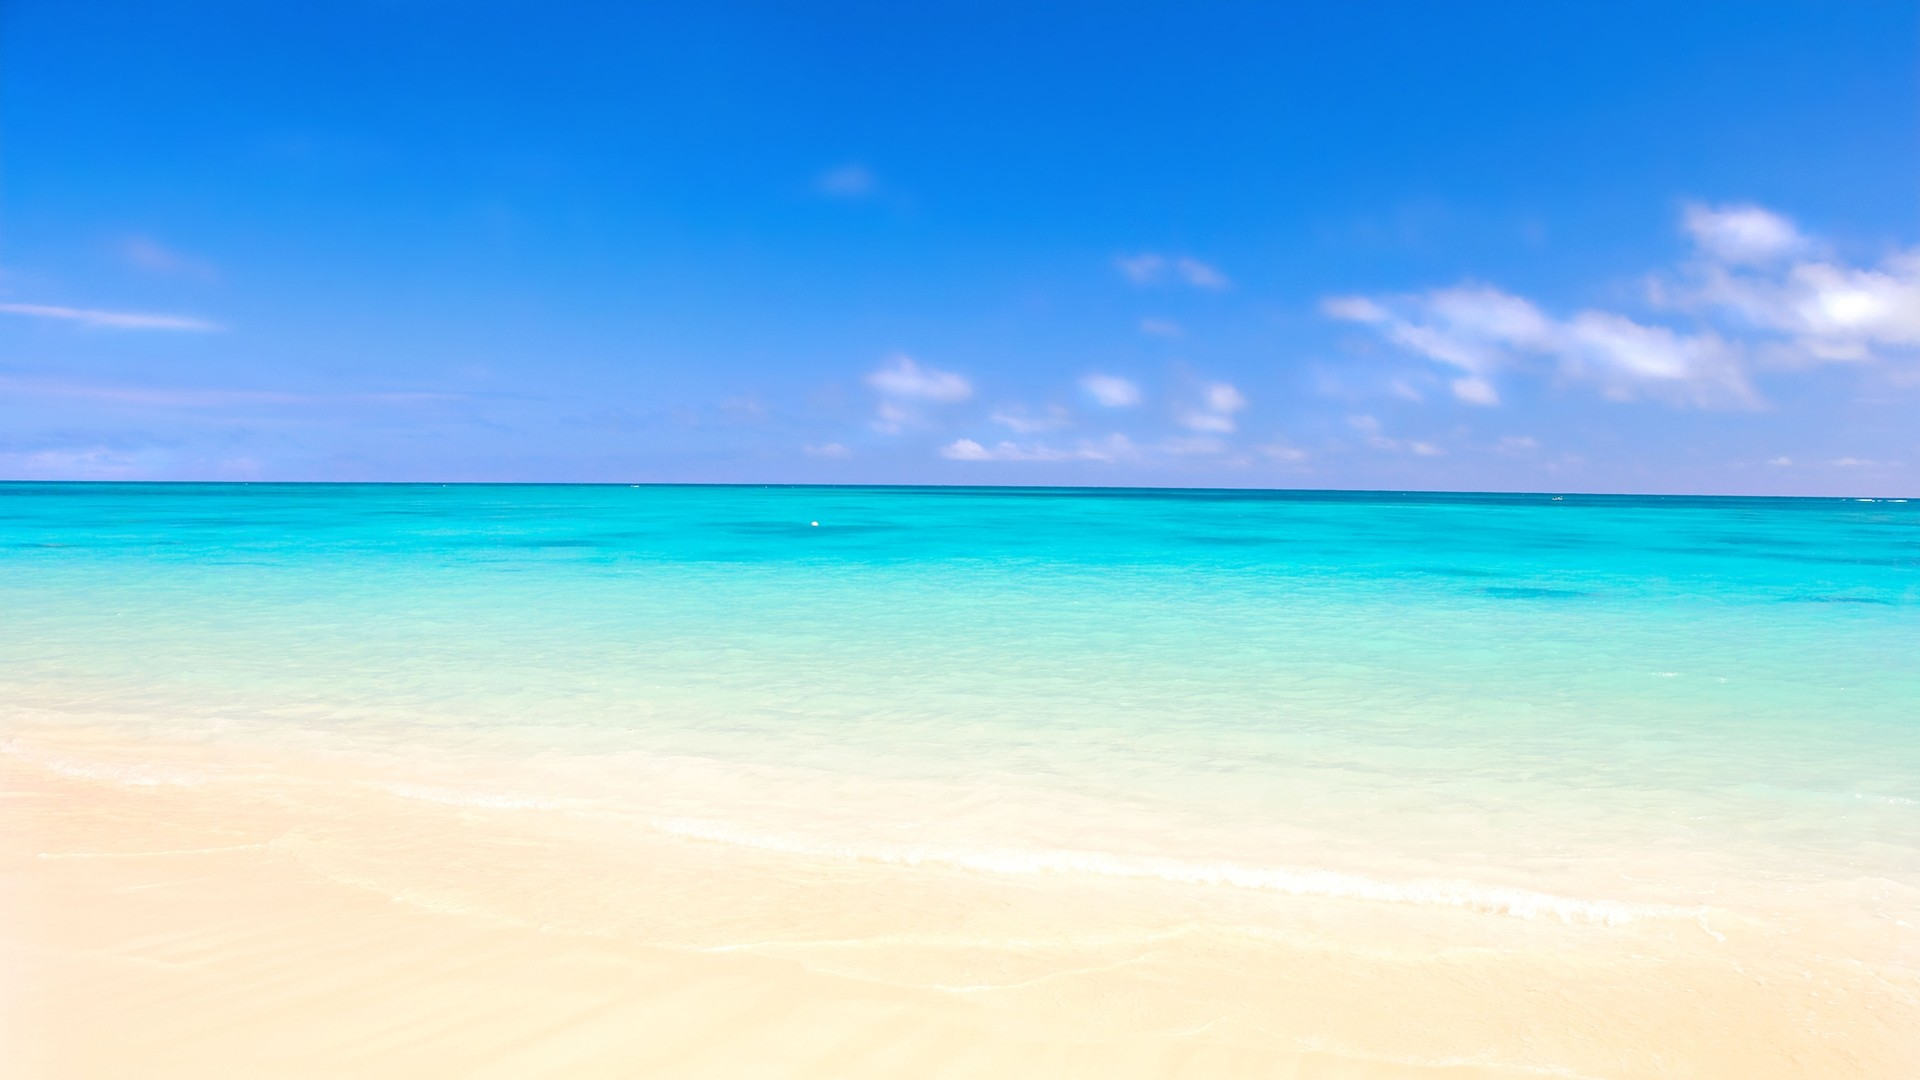 1920x1080 Ocean Sand Background